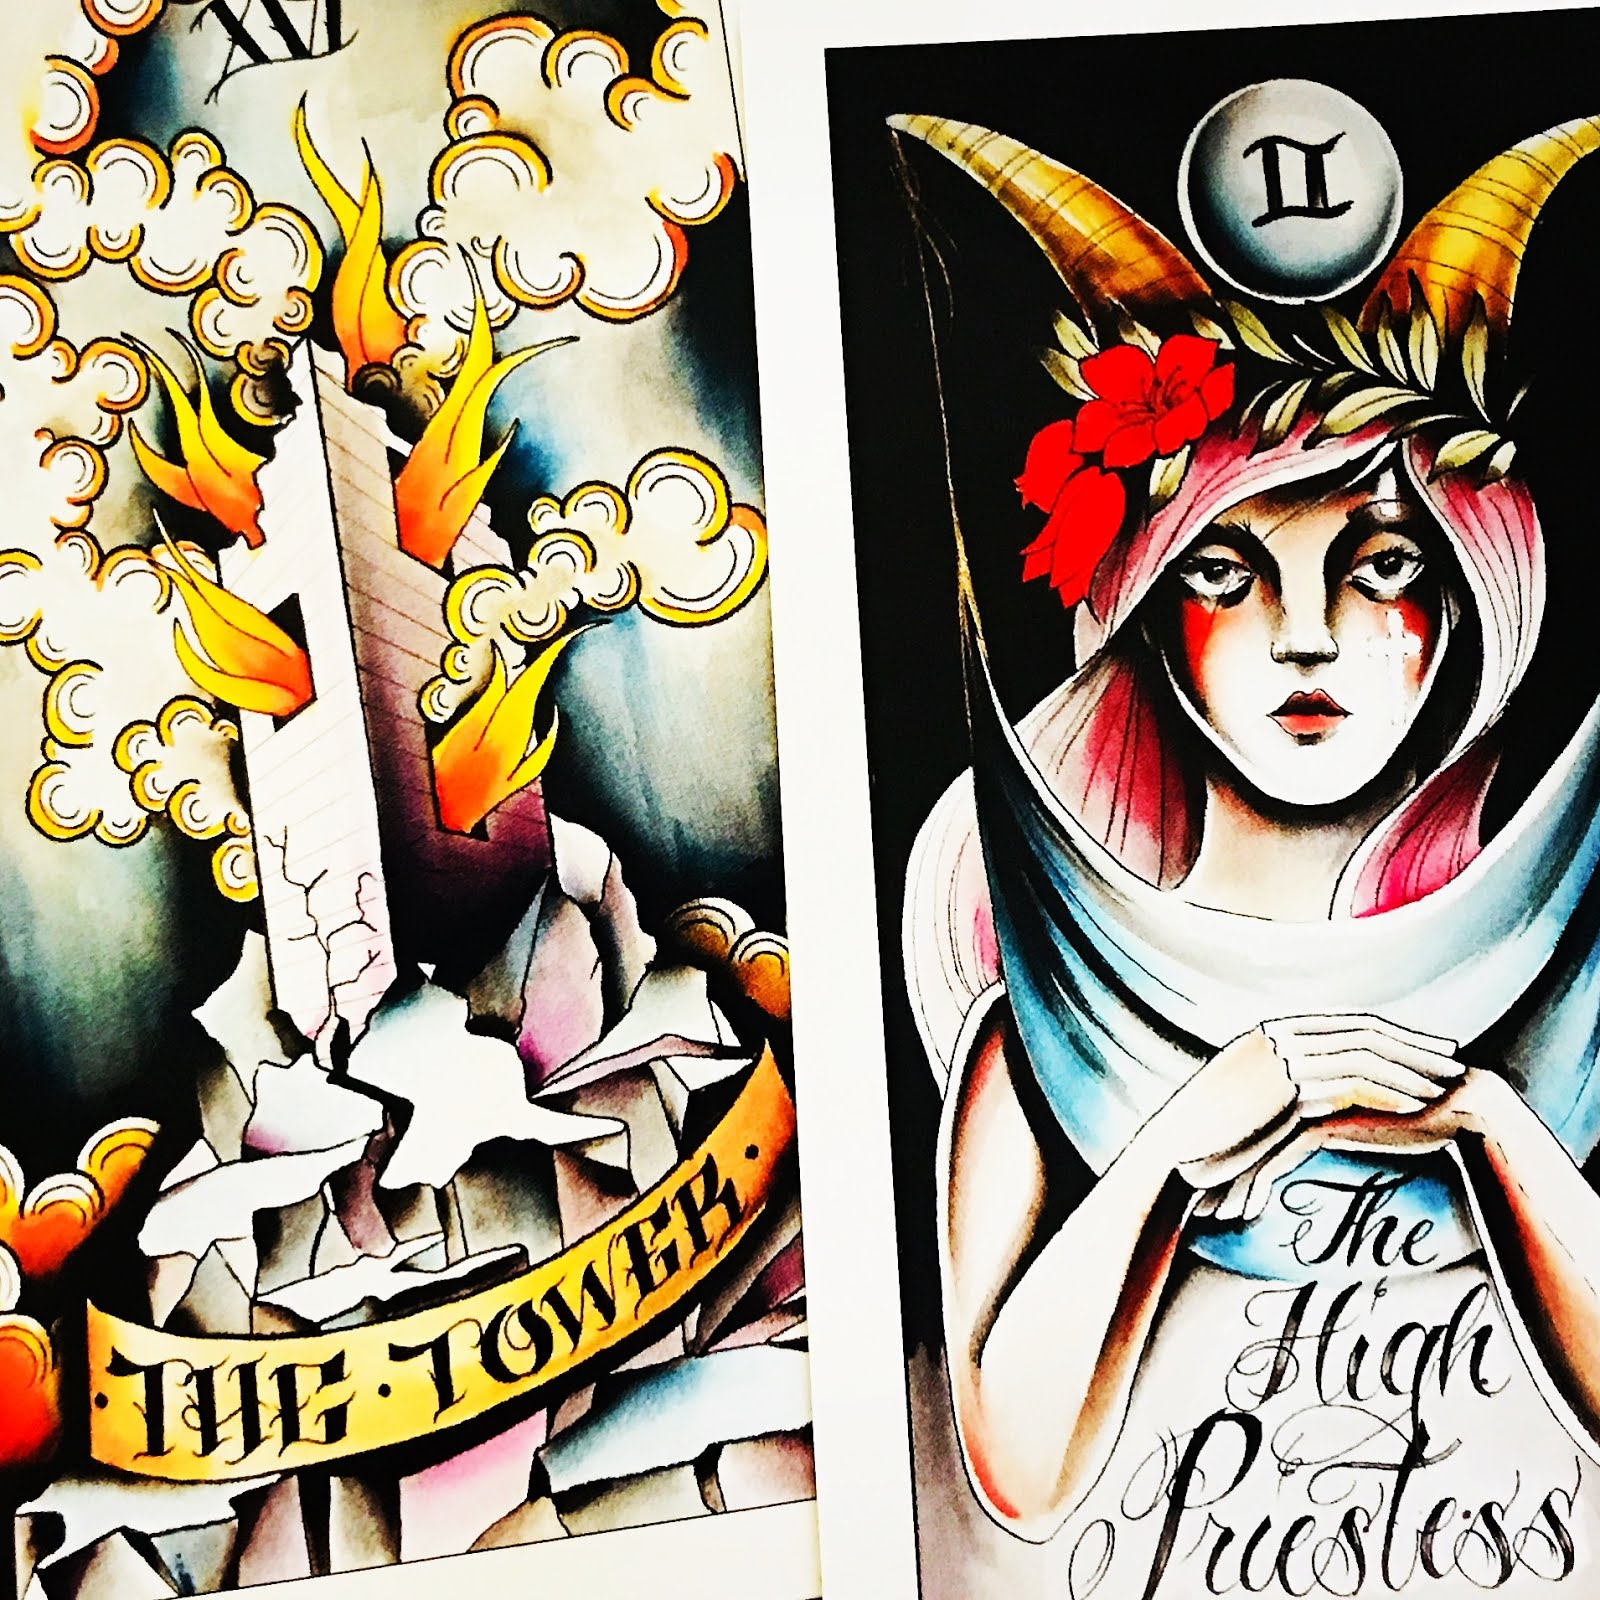 Eight Coins' Tattoo Tarot by Lana Zellner | The Curious Cardslinger